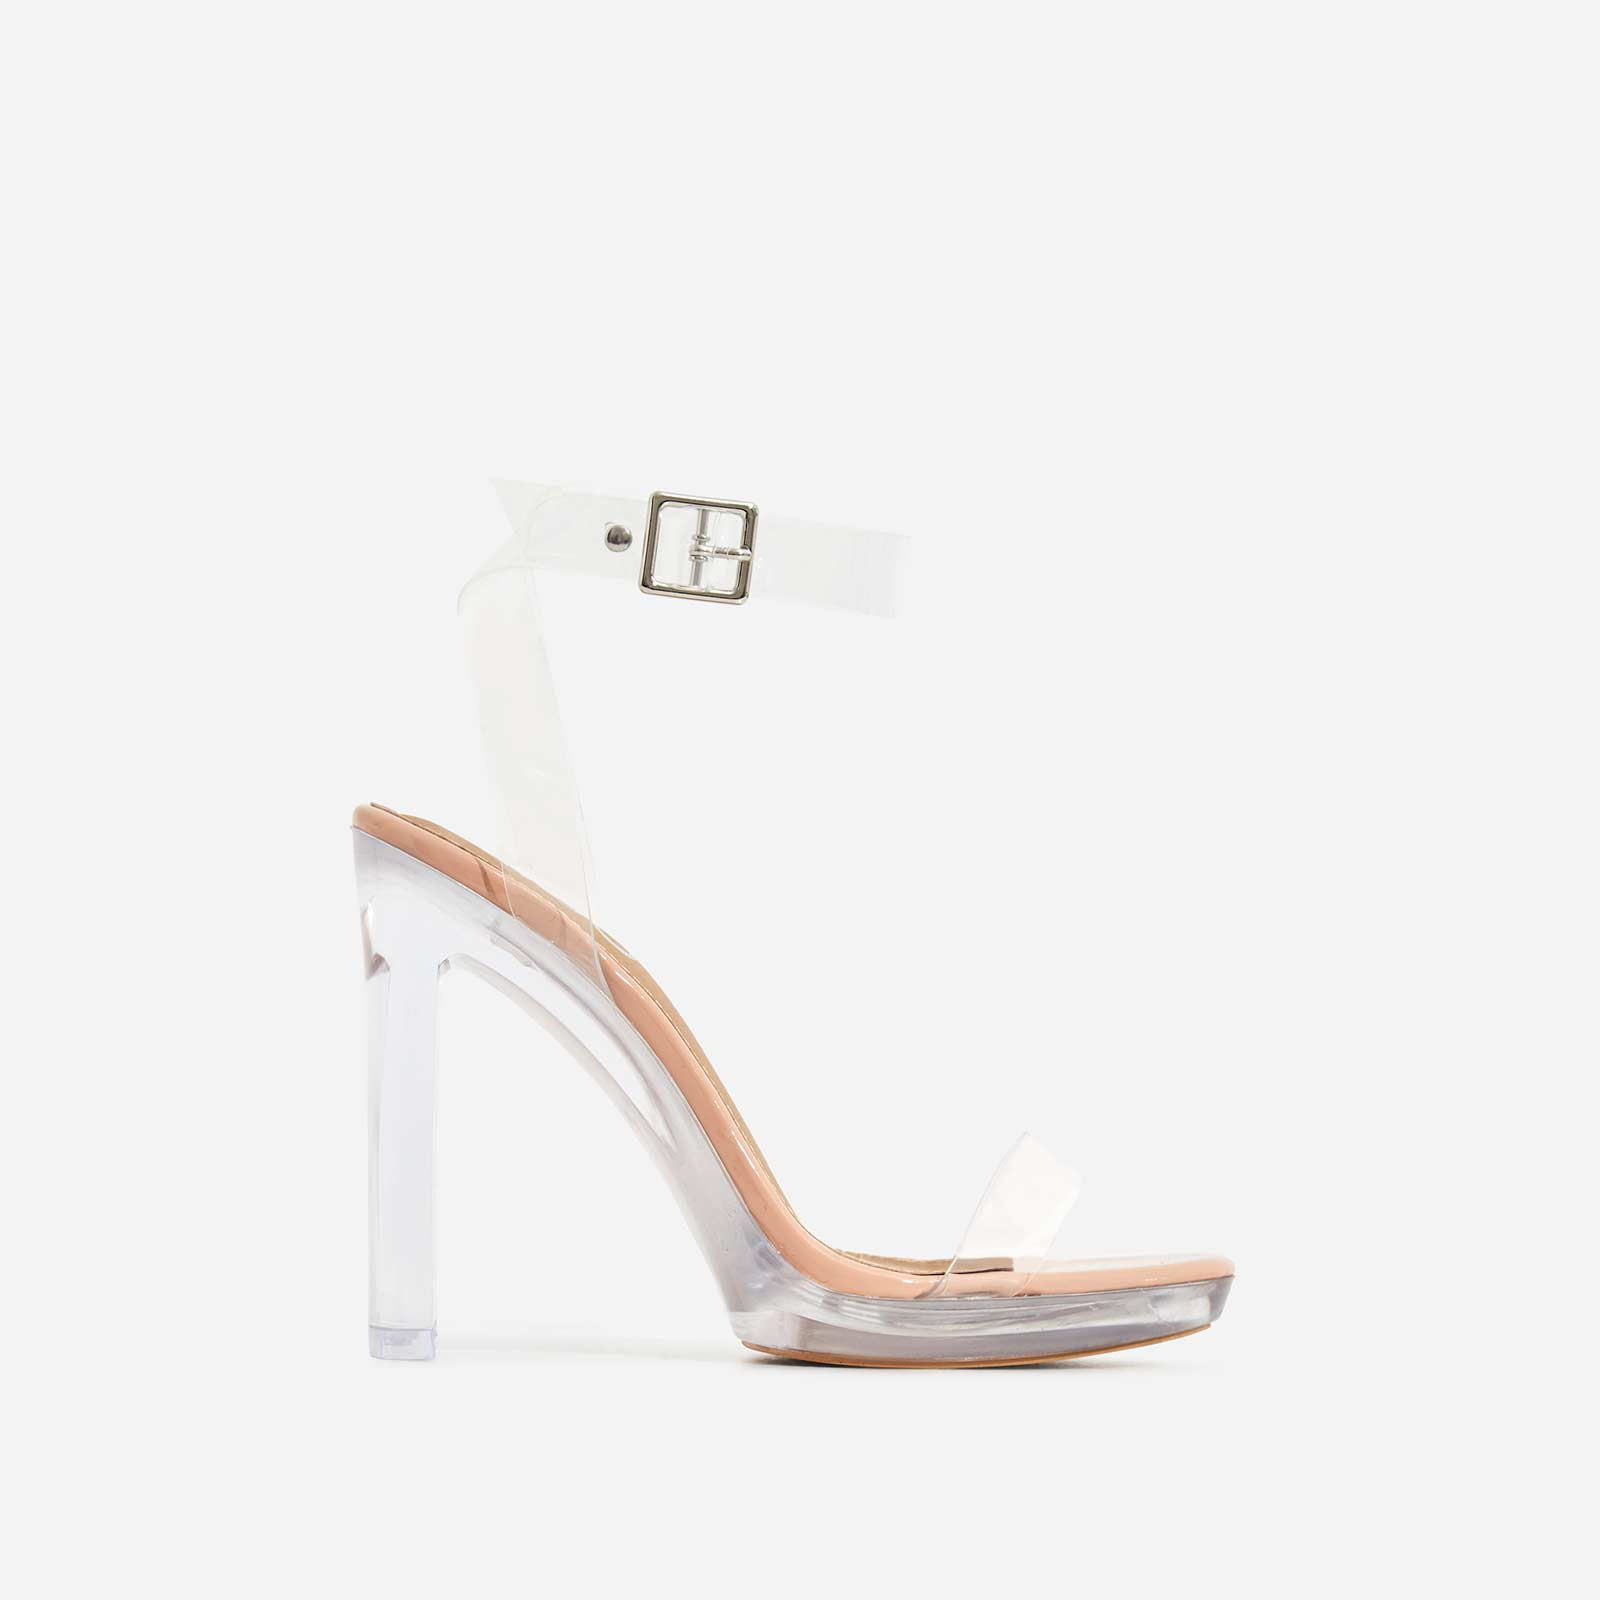 Icy Perspex Platform Barely There Thin Block Heel In Nude Patent